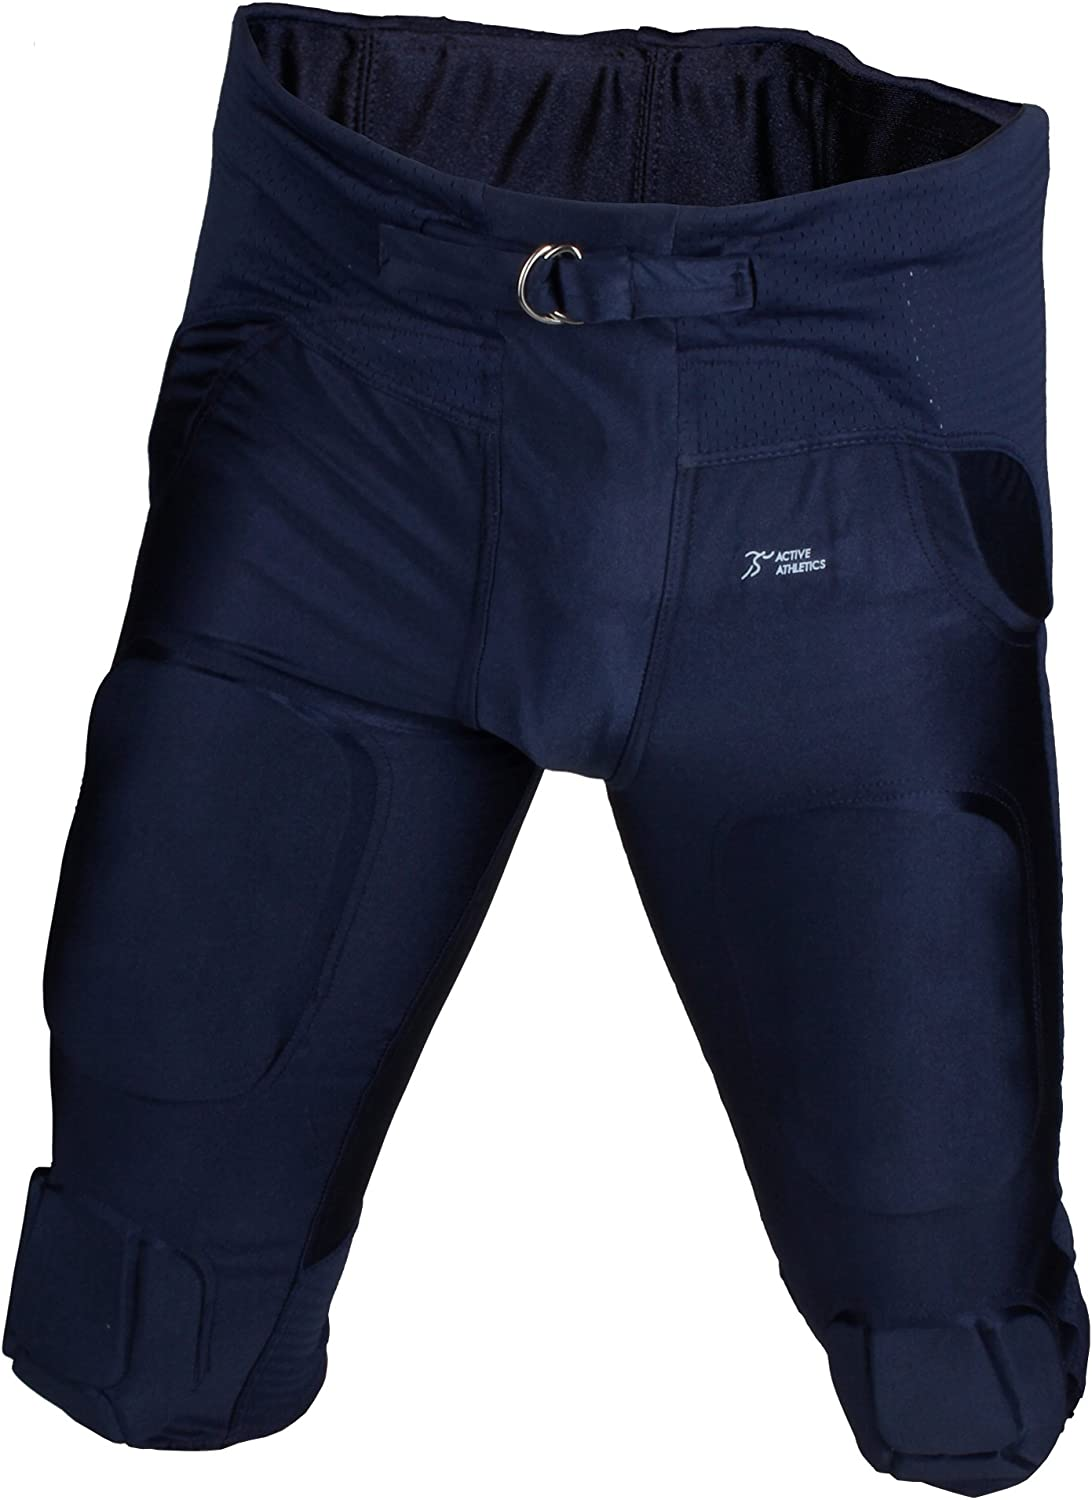 """Full Force football gamepants with 7 integrated pads /""""All in One/"""" black"""